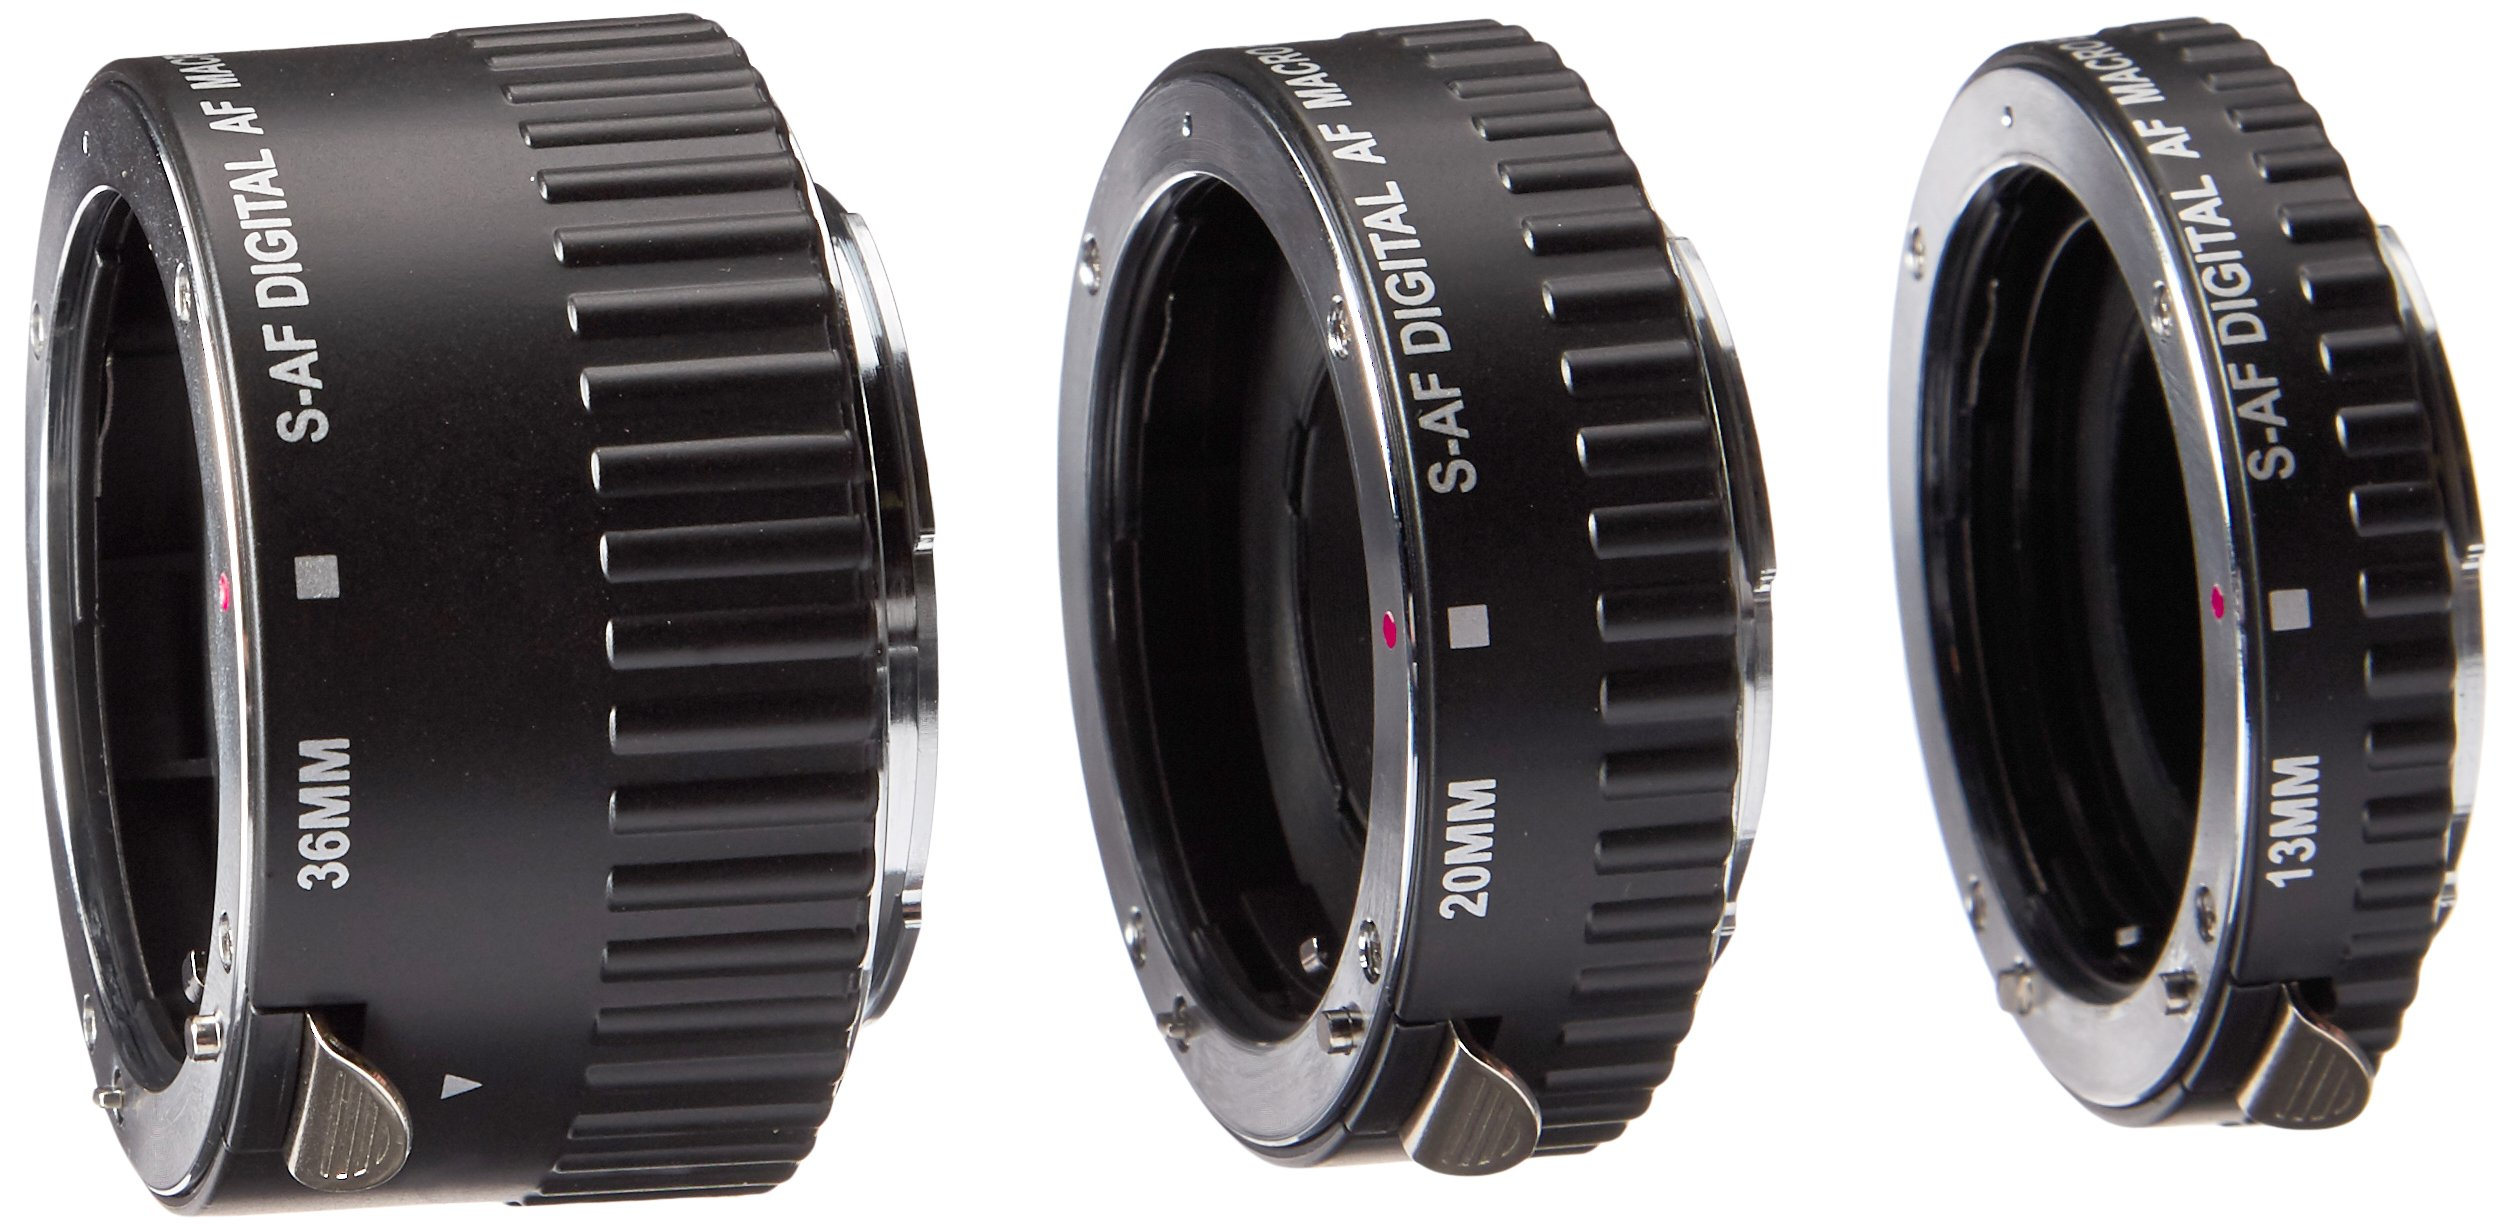 Polaroid Auto Focus DG Macro Extension Tube Set (13mm, 20mm, 36mm) For Sony Alpha Digital SLR Cameras by Polaroid